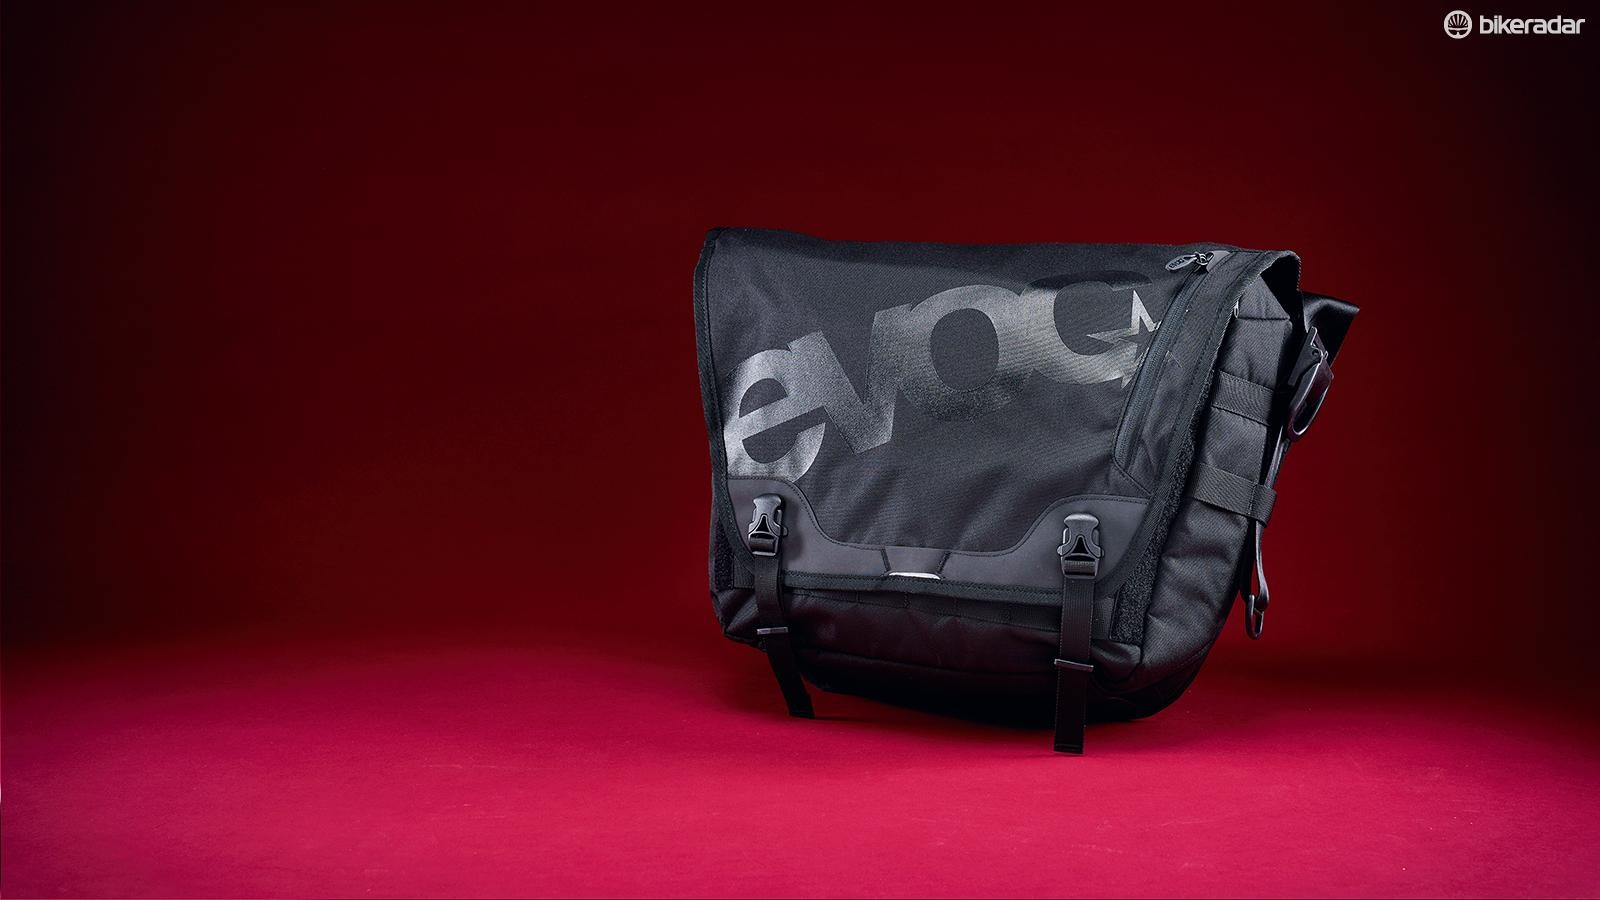 The tough polyurethane bag has a water-resistant coating